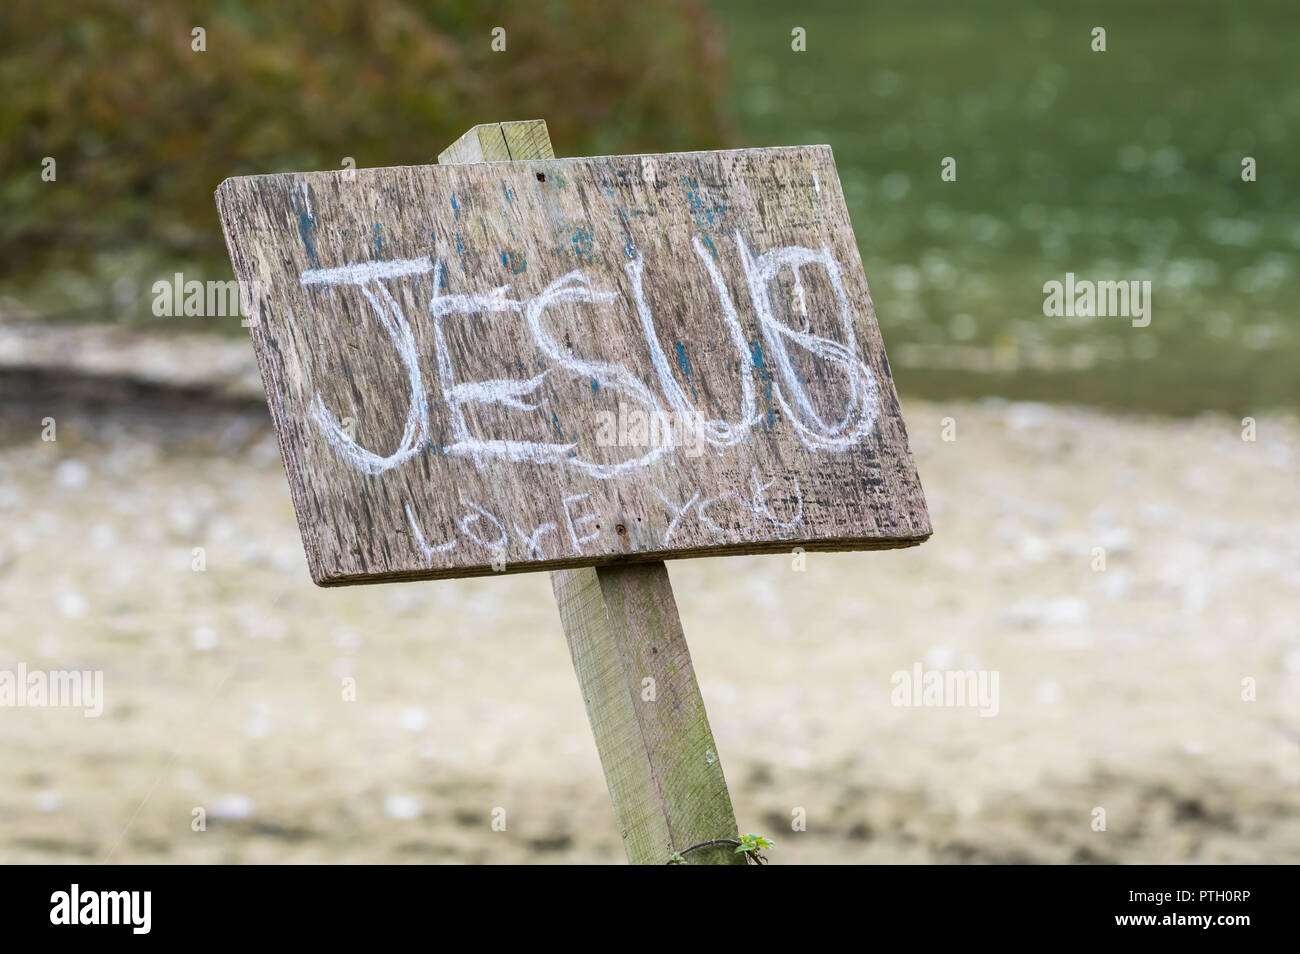 Sign outside with graffiti saying 'Jesus loves you', a religeous message to promote the Christian belief, in the UK. - Stock Image